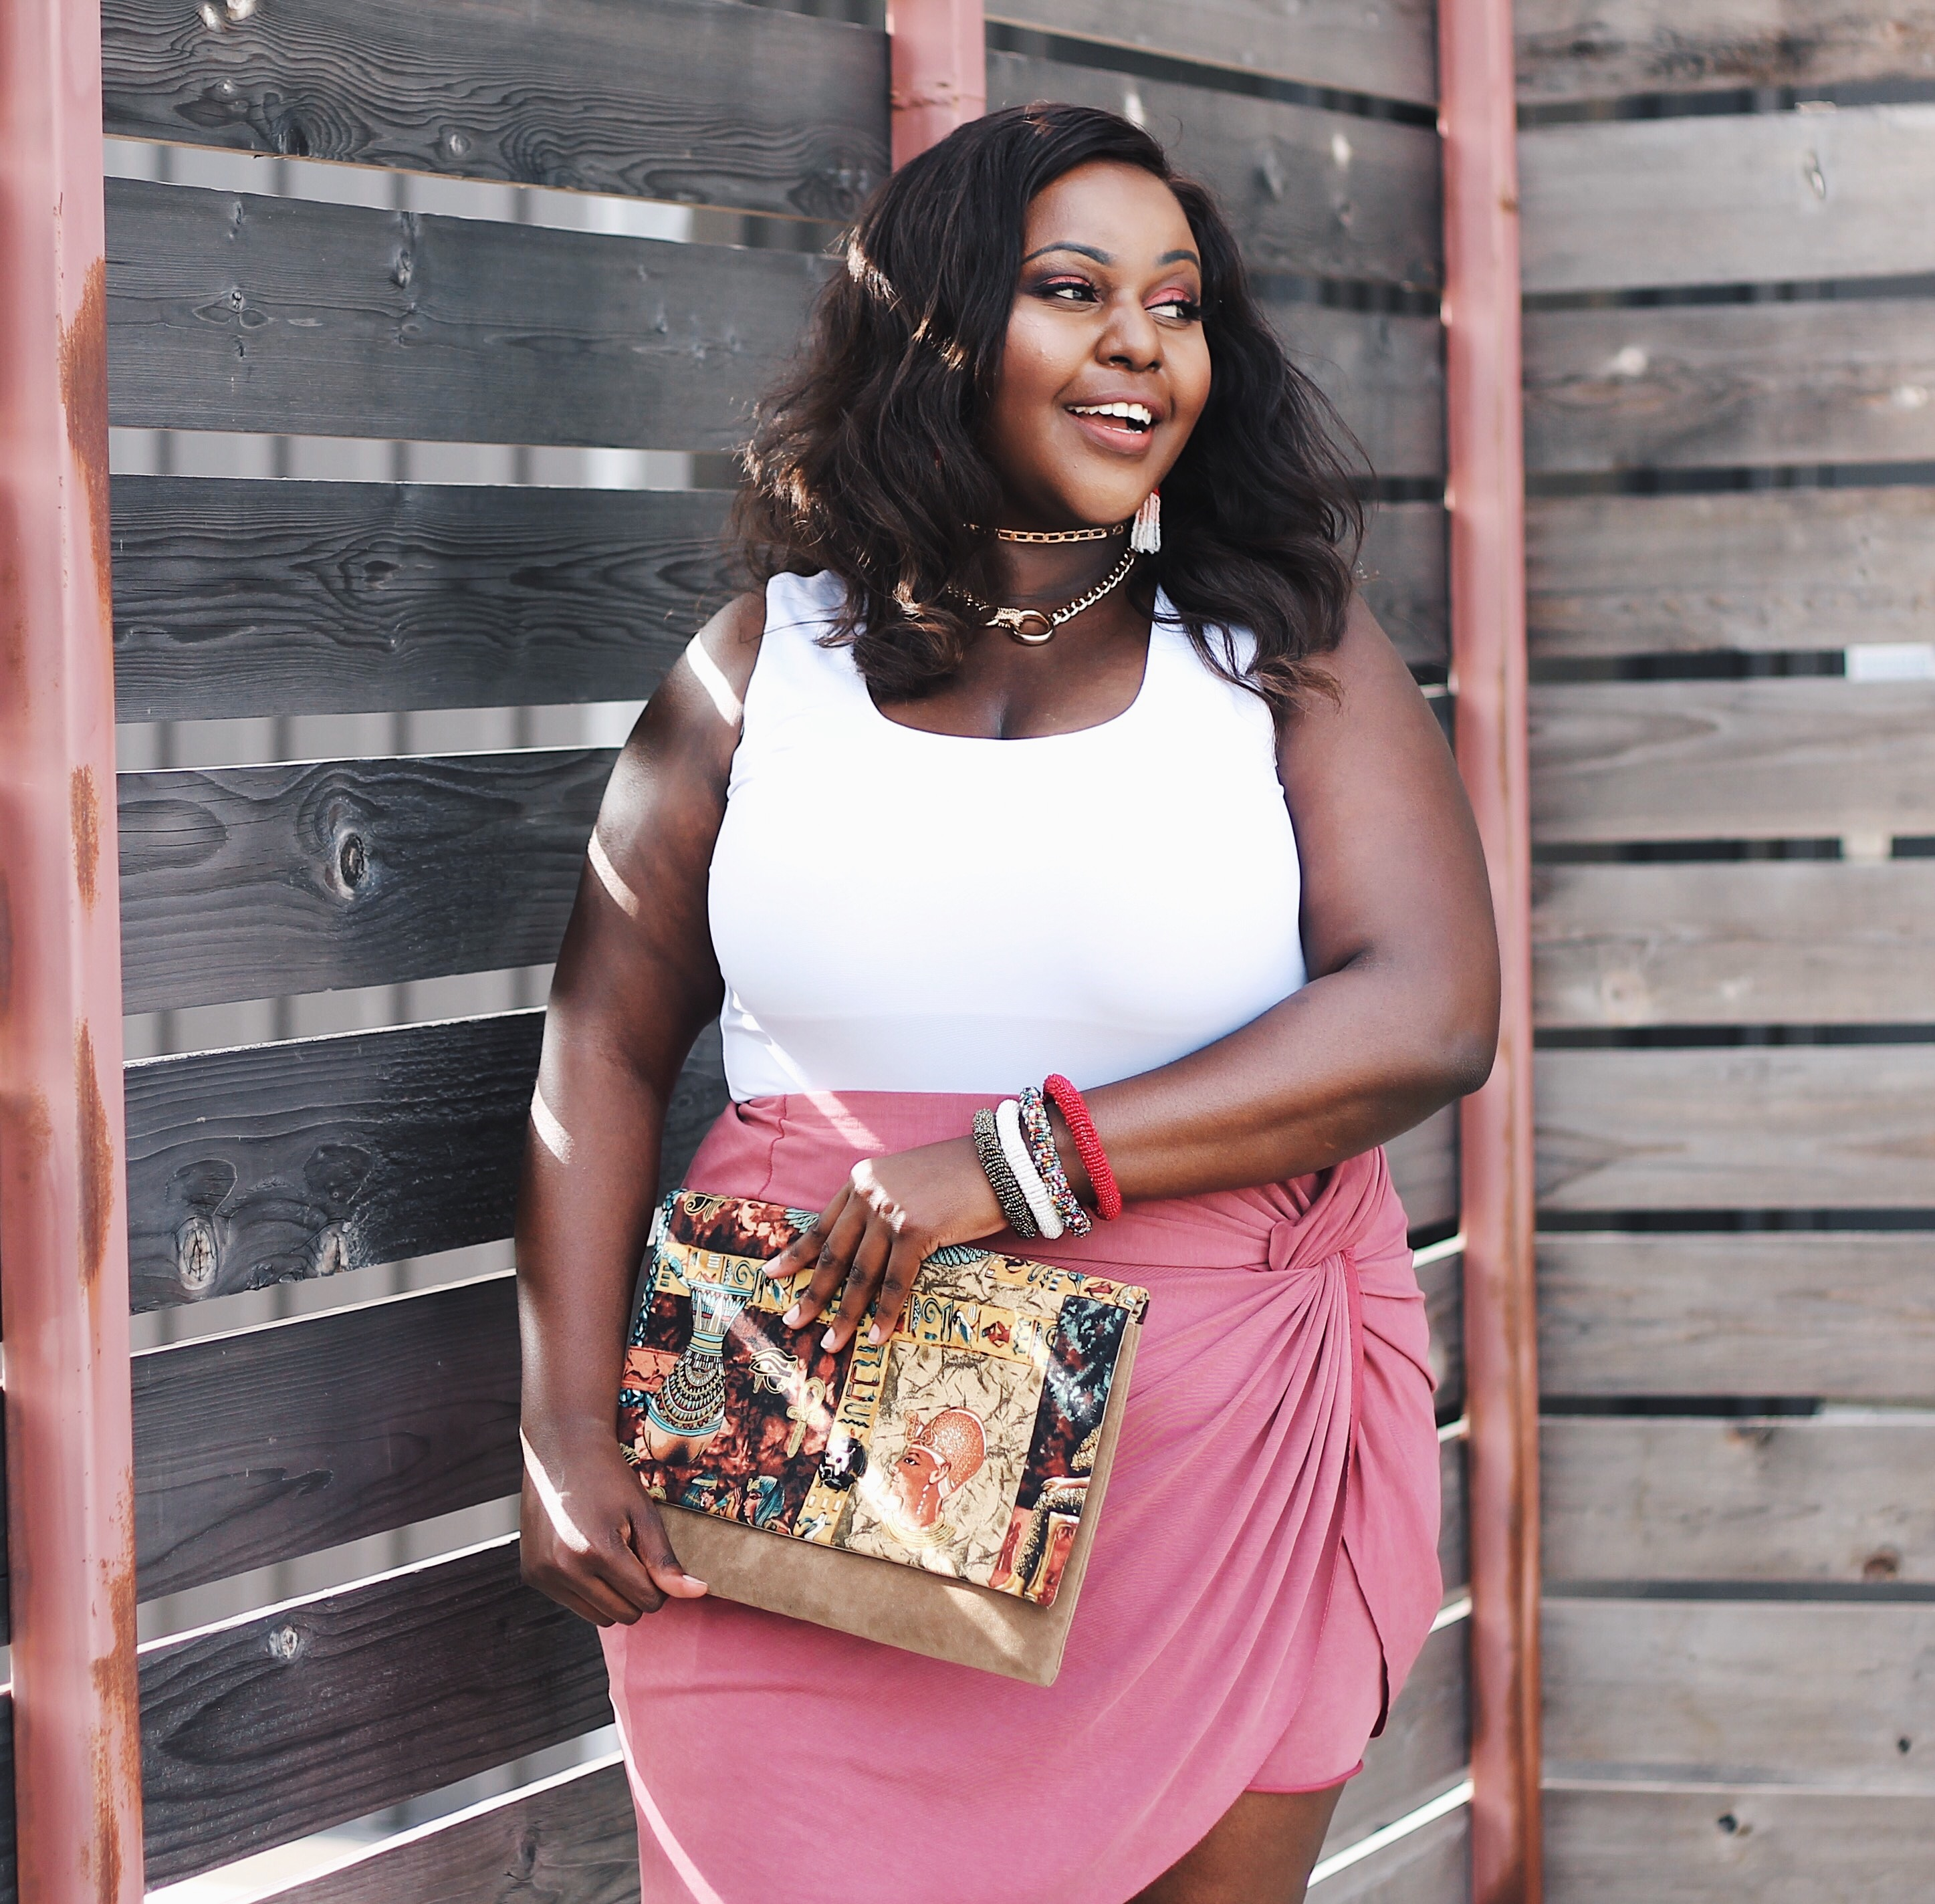 plus size fashion blogs 2017,  beautiful curvy girls,  how to fill the eye brow of a dark skin,  beautiful plus size dark skin girls